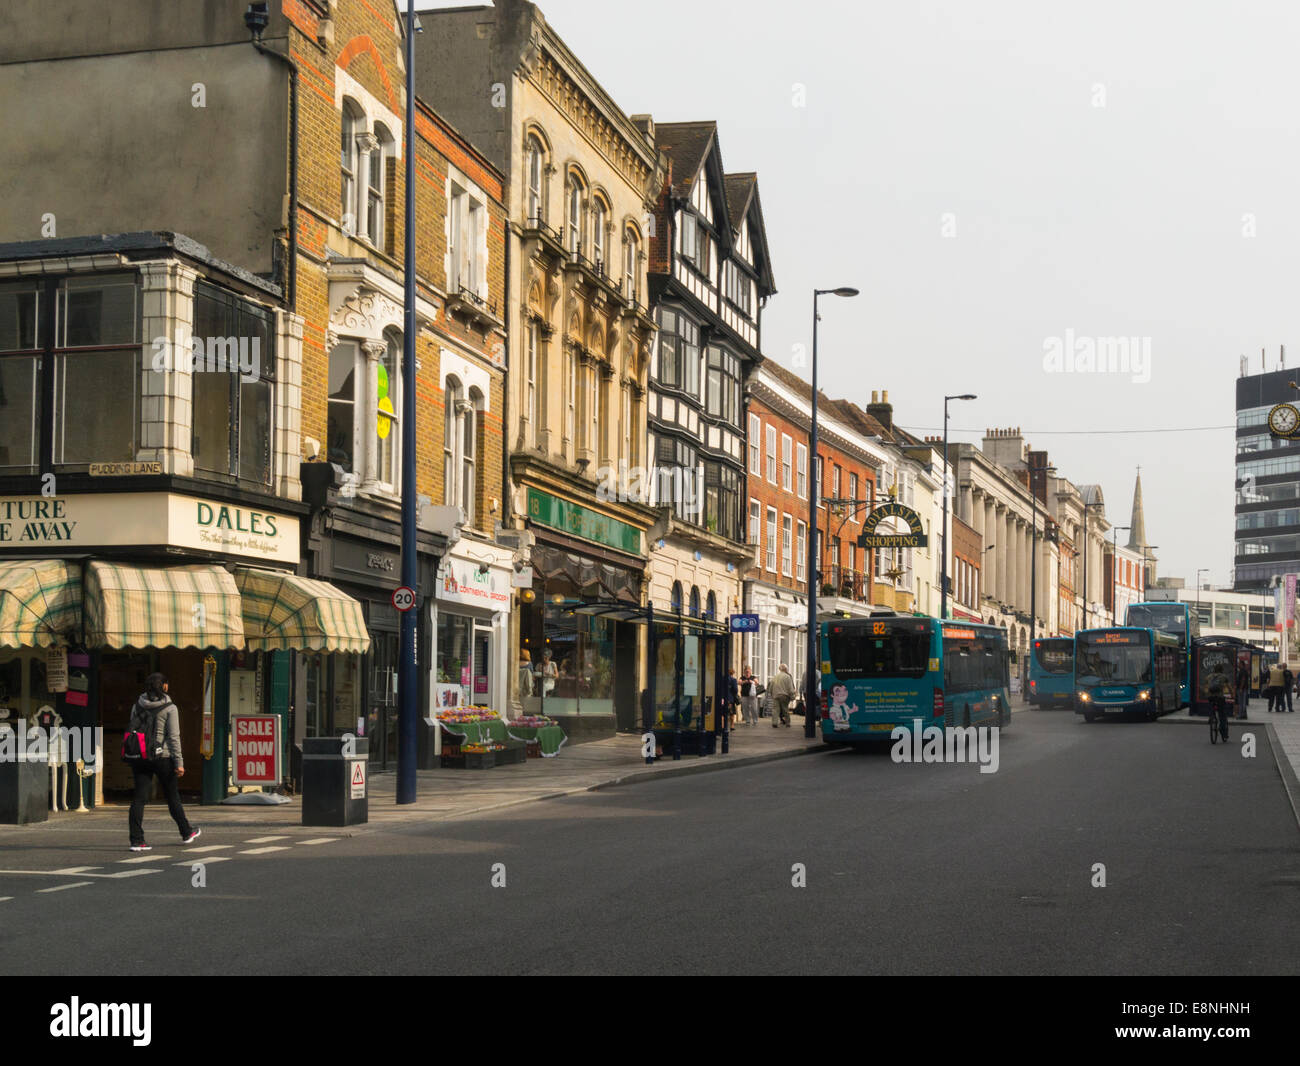 Looking up Bank Street with Royal Star Shopping Arcade Maidstone Kent England UK - Stock Image